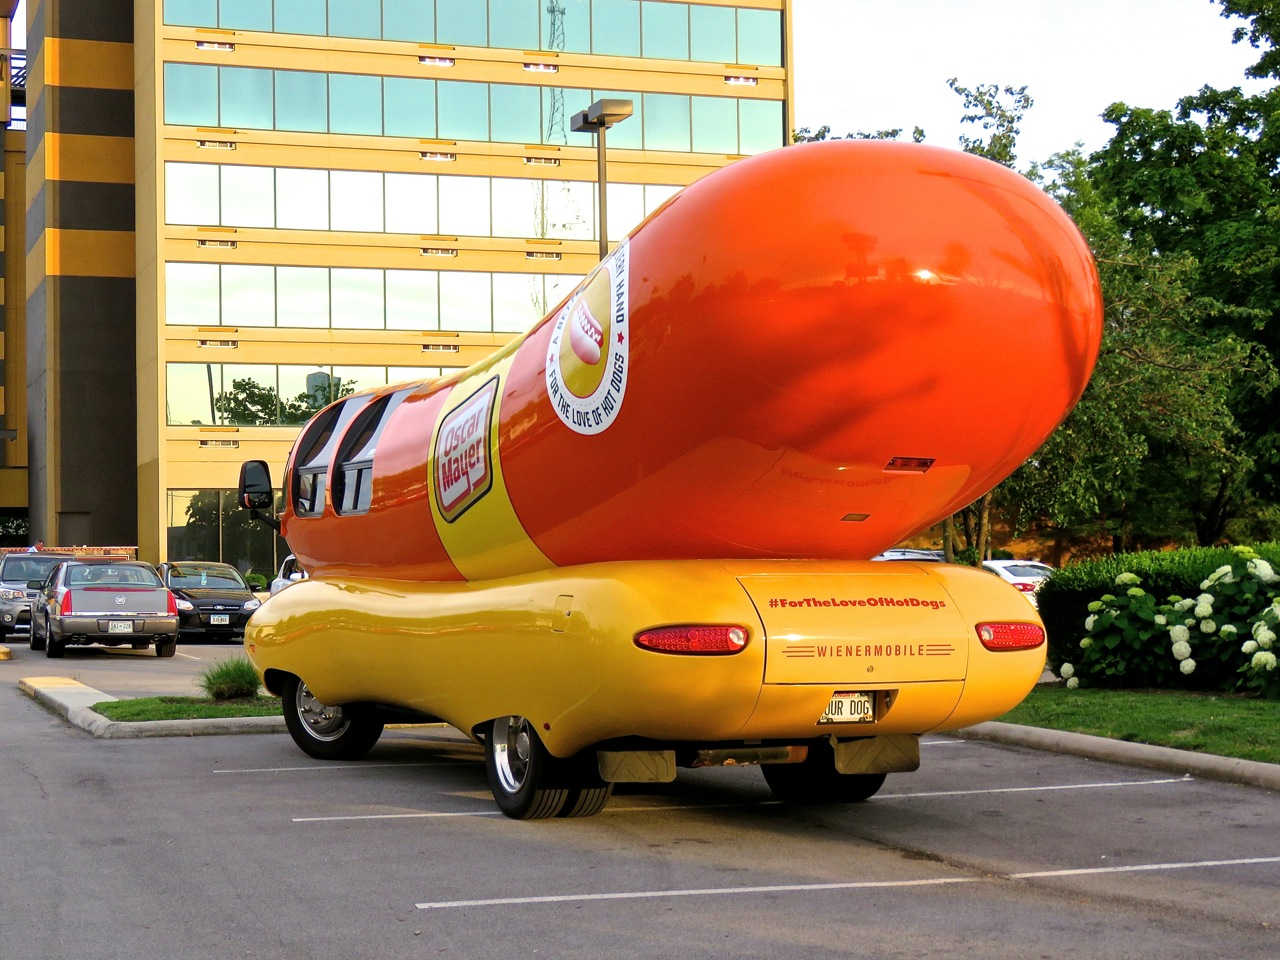 Last Chance Ask Questions Green Bay Packers Mailbag further Til after 1250 gallons of mayonnaise went bad at also Jokes Jokes Messages Poetry further Resident Has Lived At Life Care Center Of Cleveland For 35 Years further Sarah Sanders White House Press Briefing 330pm Est Livestream. on oscar mayer wienermobile schedule